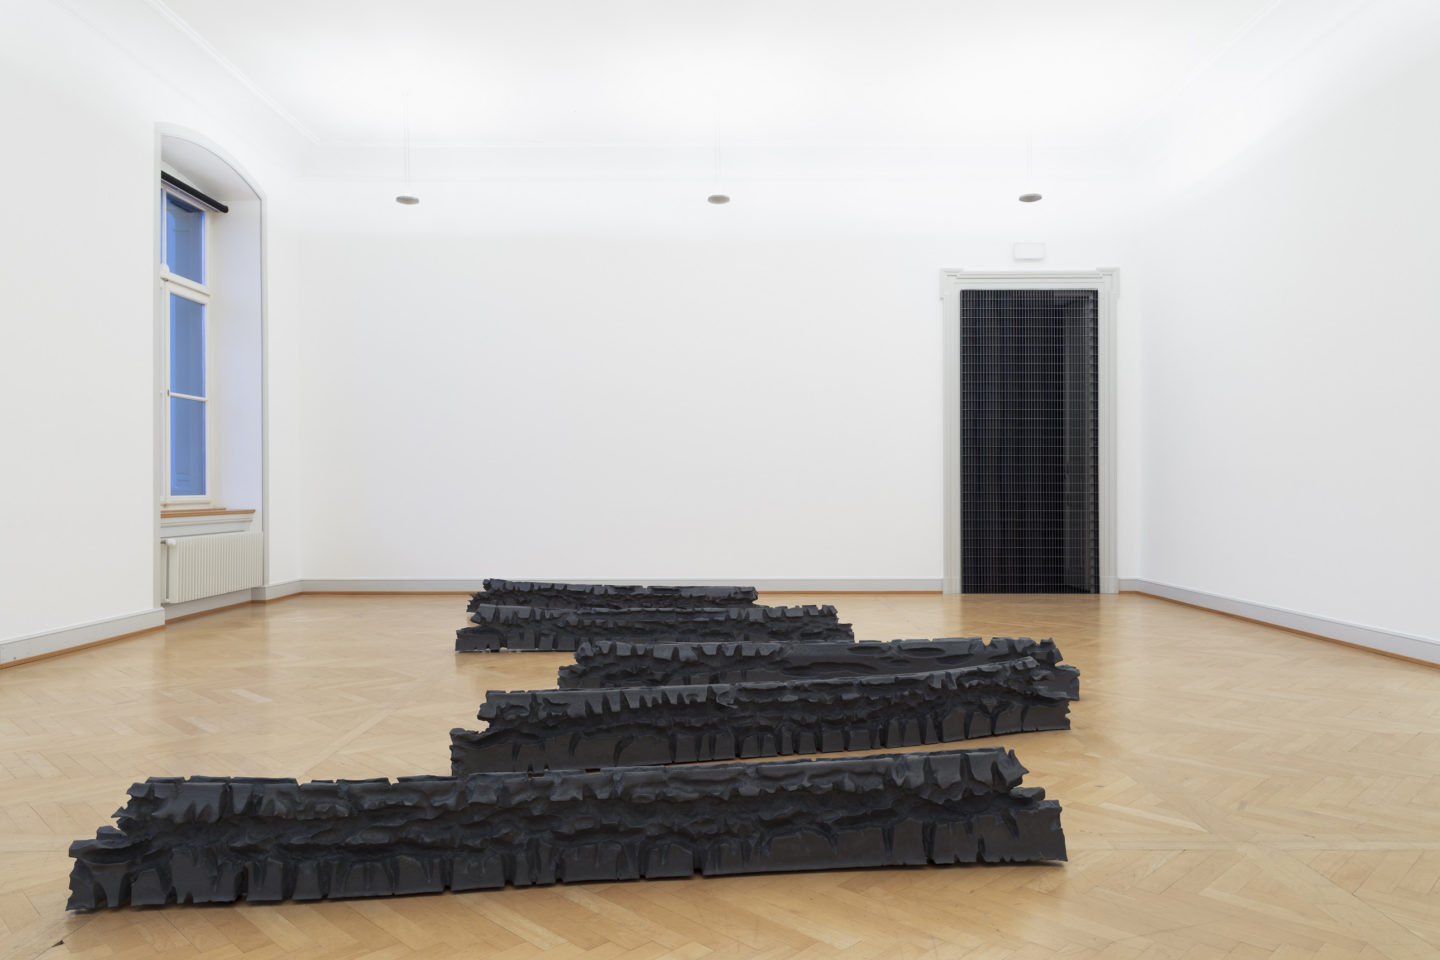 """Installation View Raphael Hefti """"Dr. Sattler: So, what are you thinking? Dr. Grant: We're out of a job. Dr. Malcom: Don't you mean extinct? 2018"""" at Kunstmuseum St. Gallen /  Photo: Gunnar Meier / Courtesy the artist"""